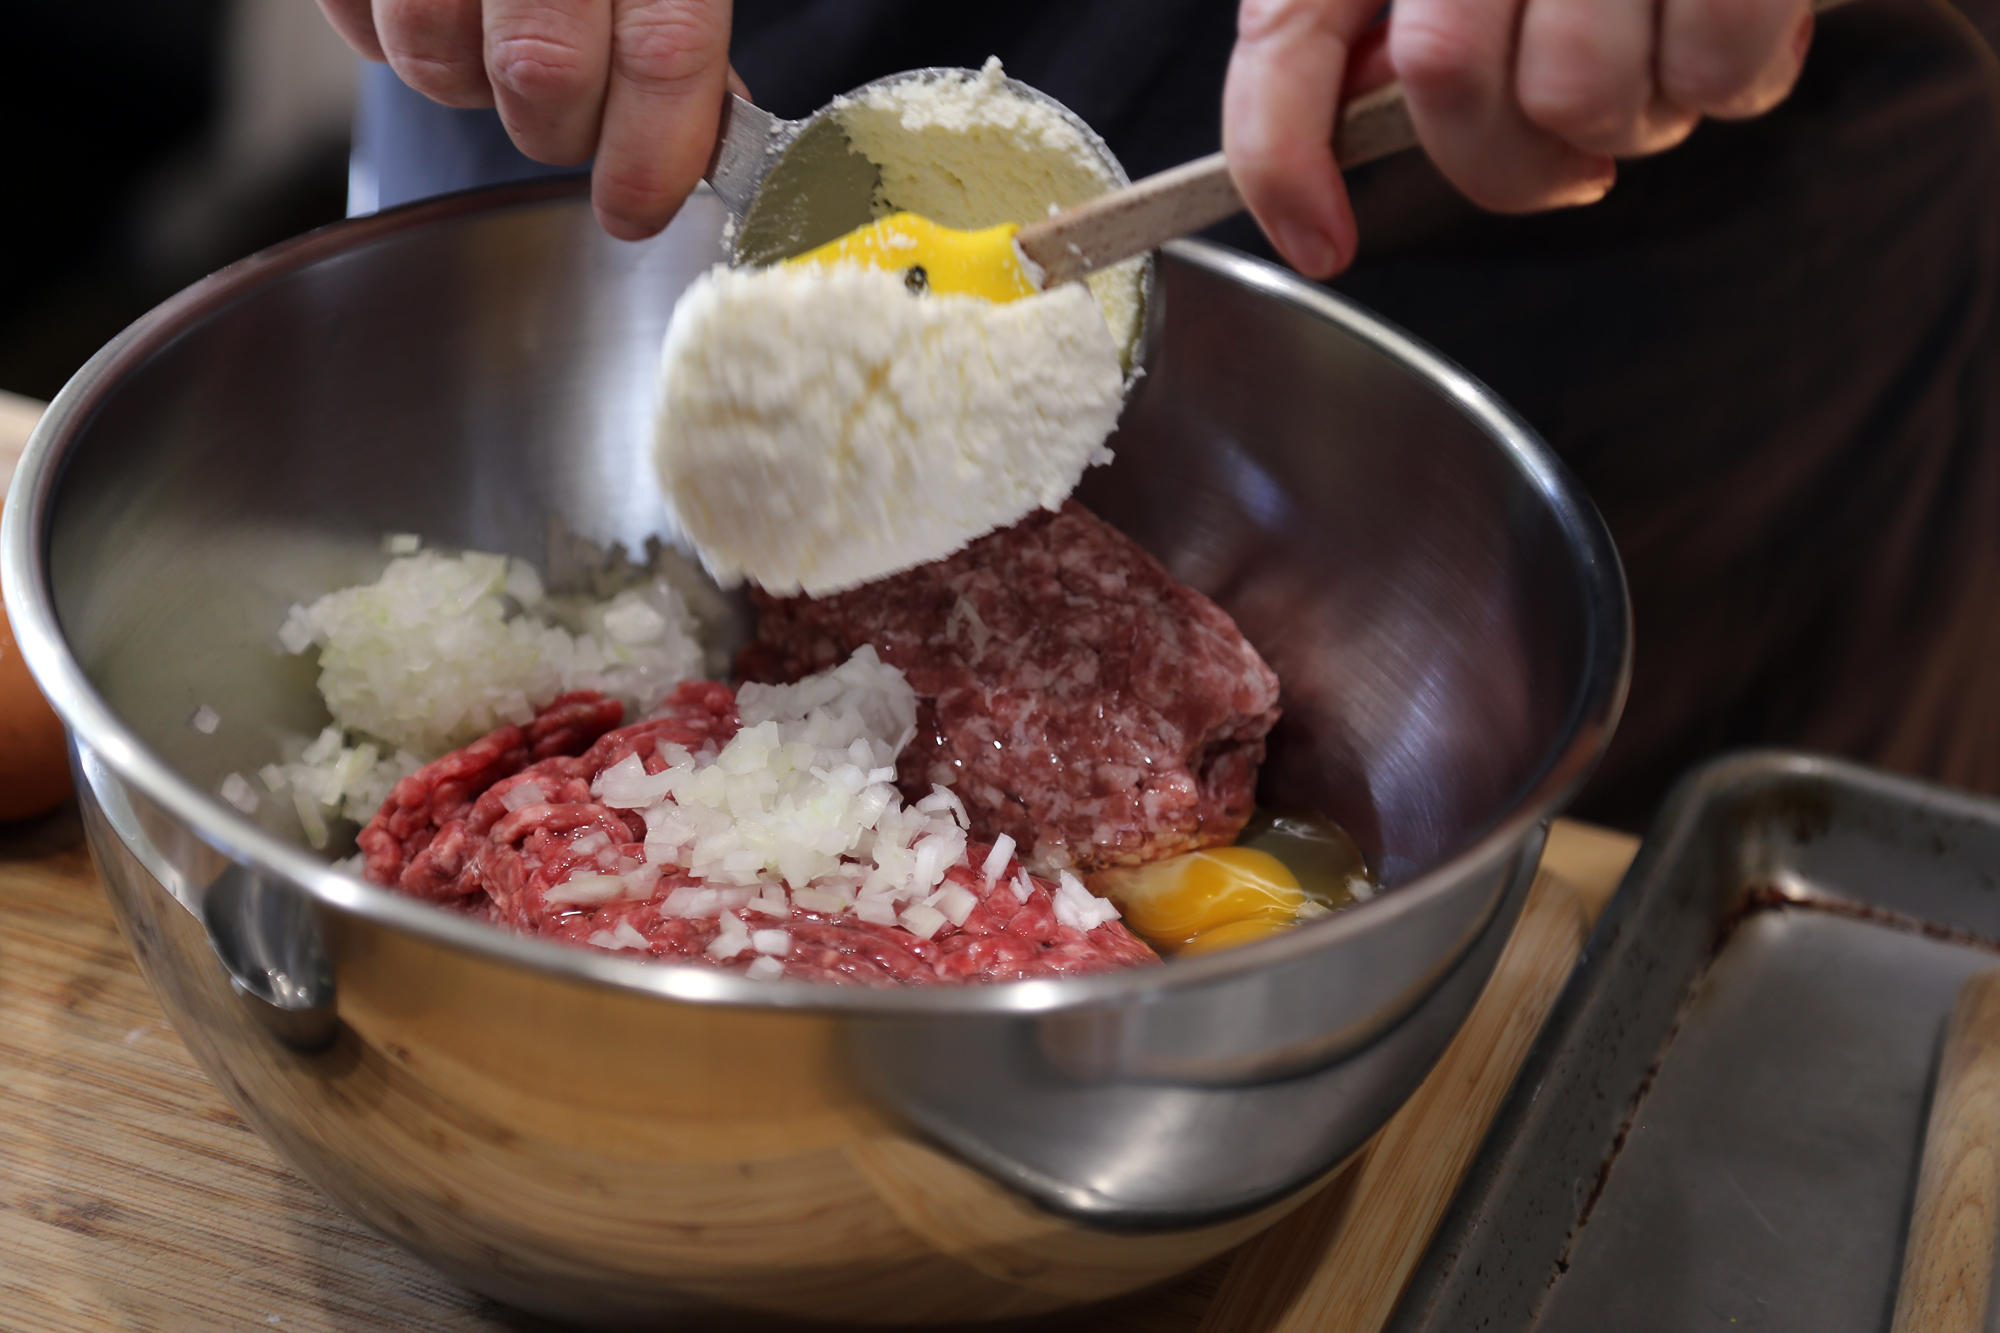 Adding ricotta cheese to the meatball mixture adds moisture and richness.